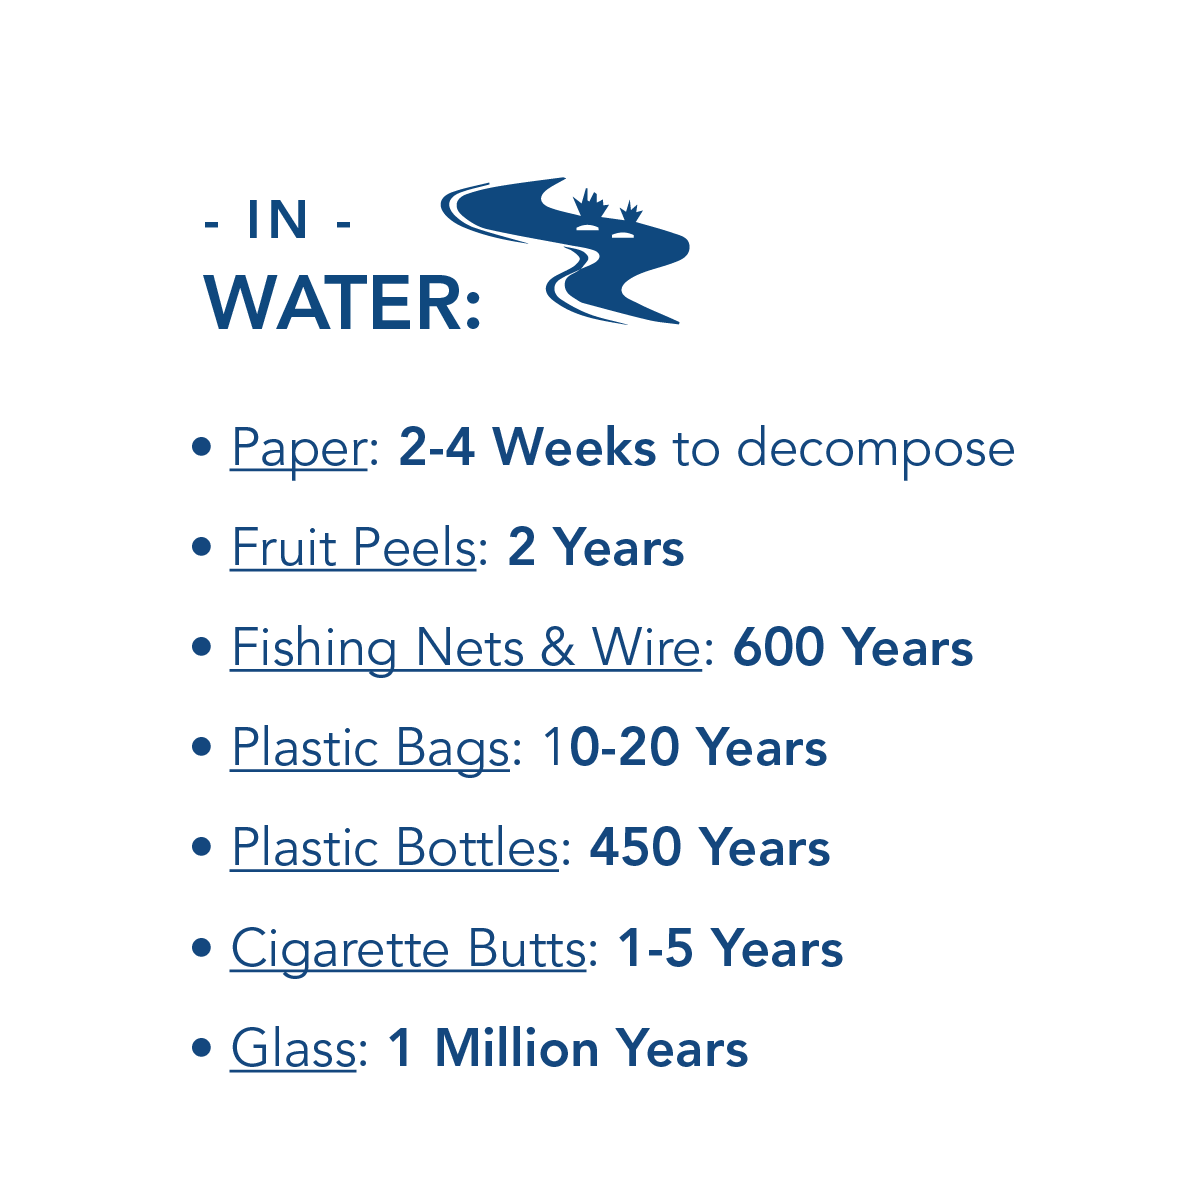 Litter Infographic Icon 8.png